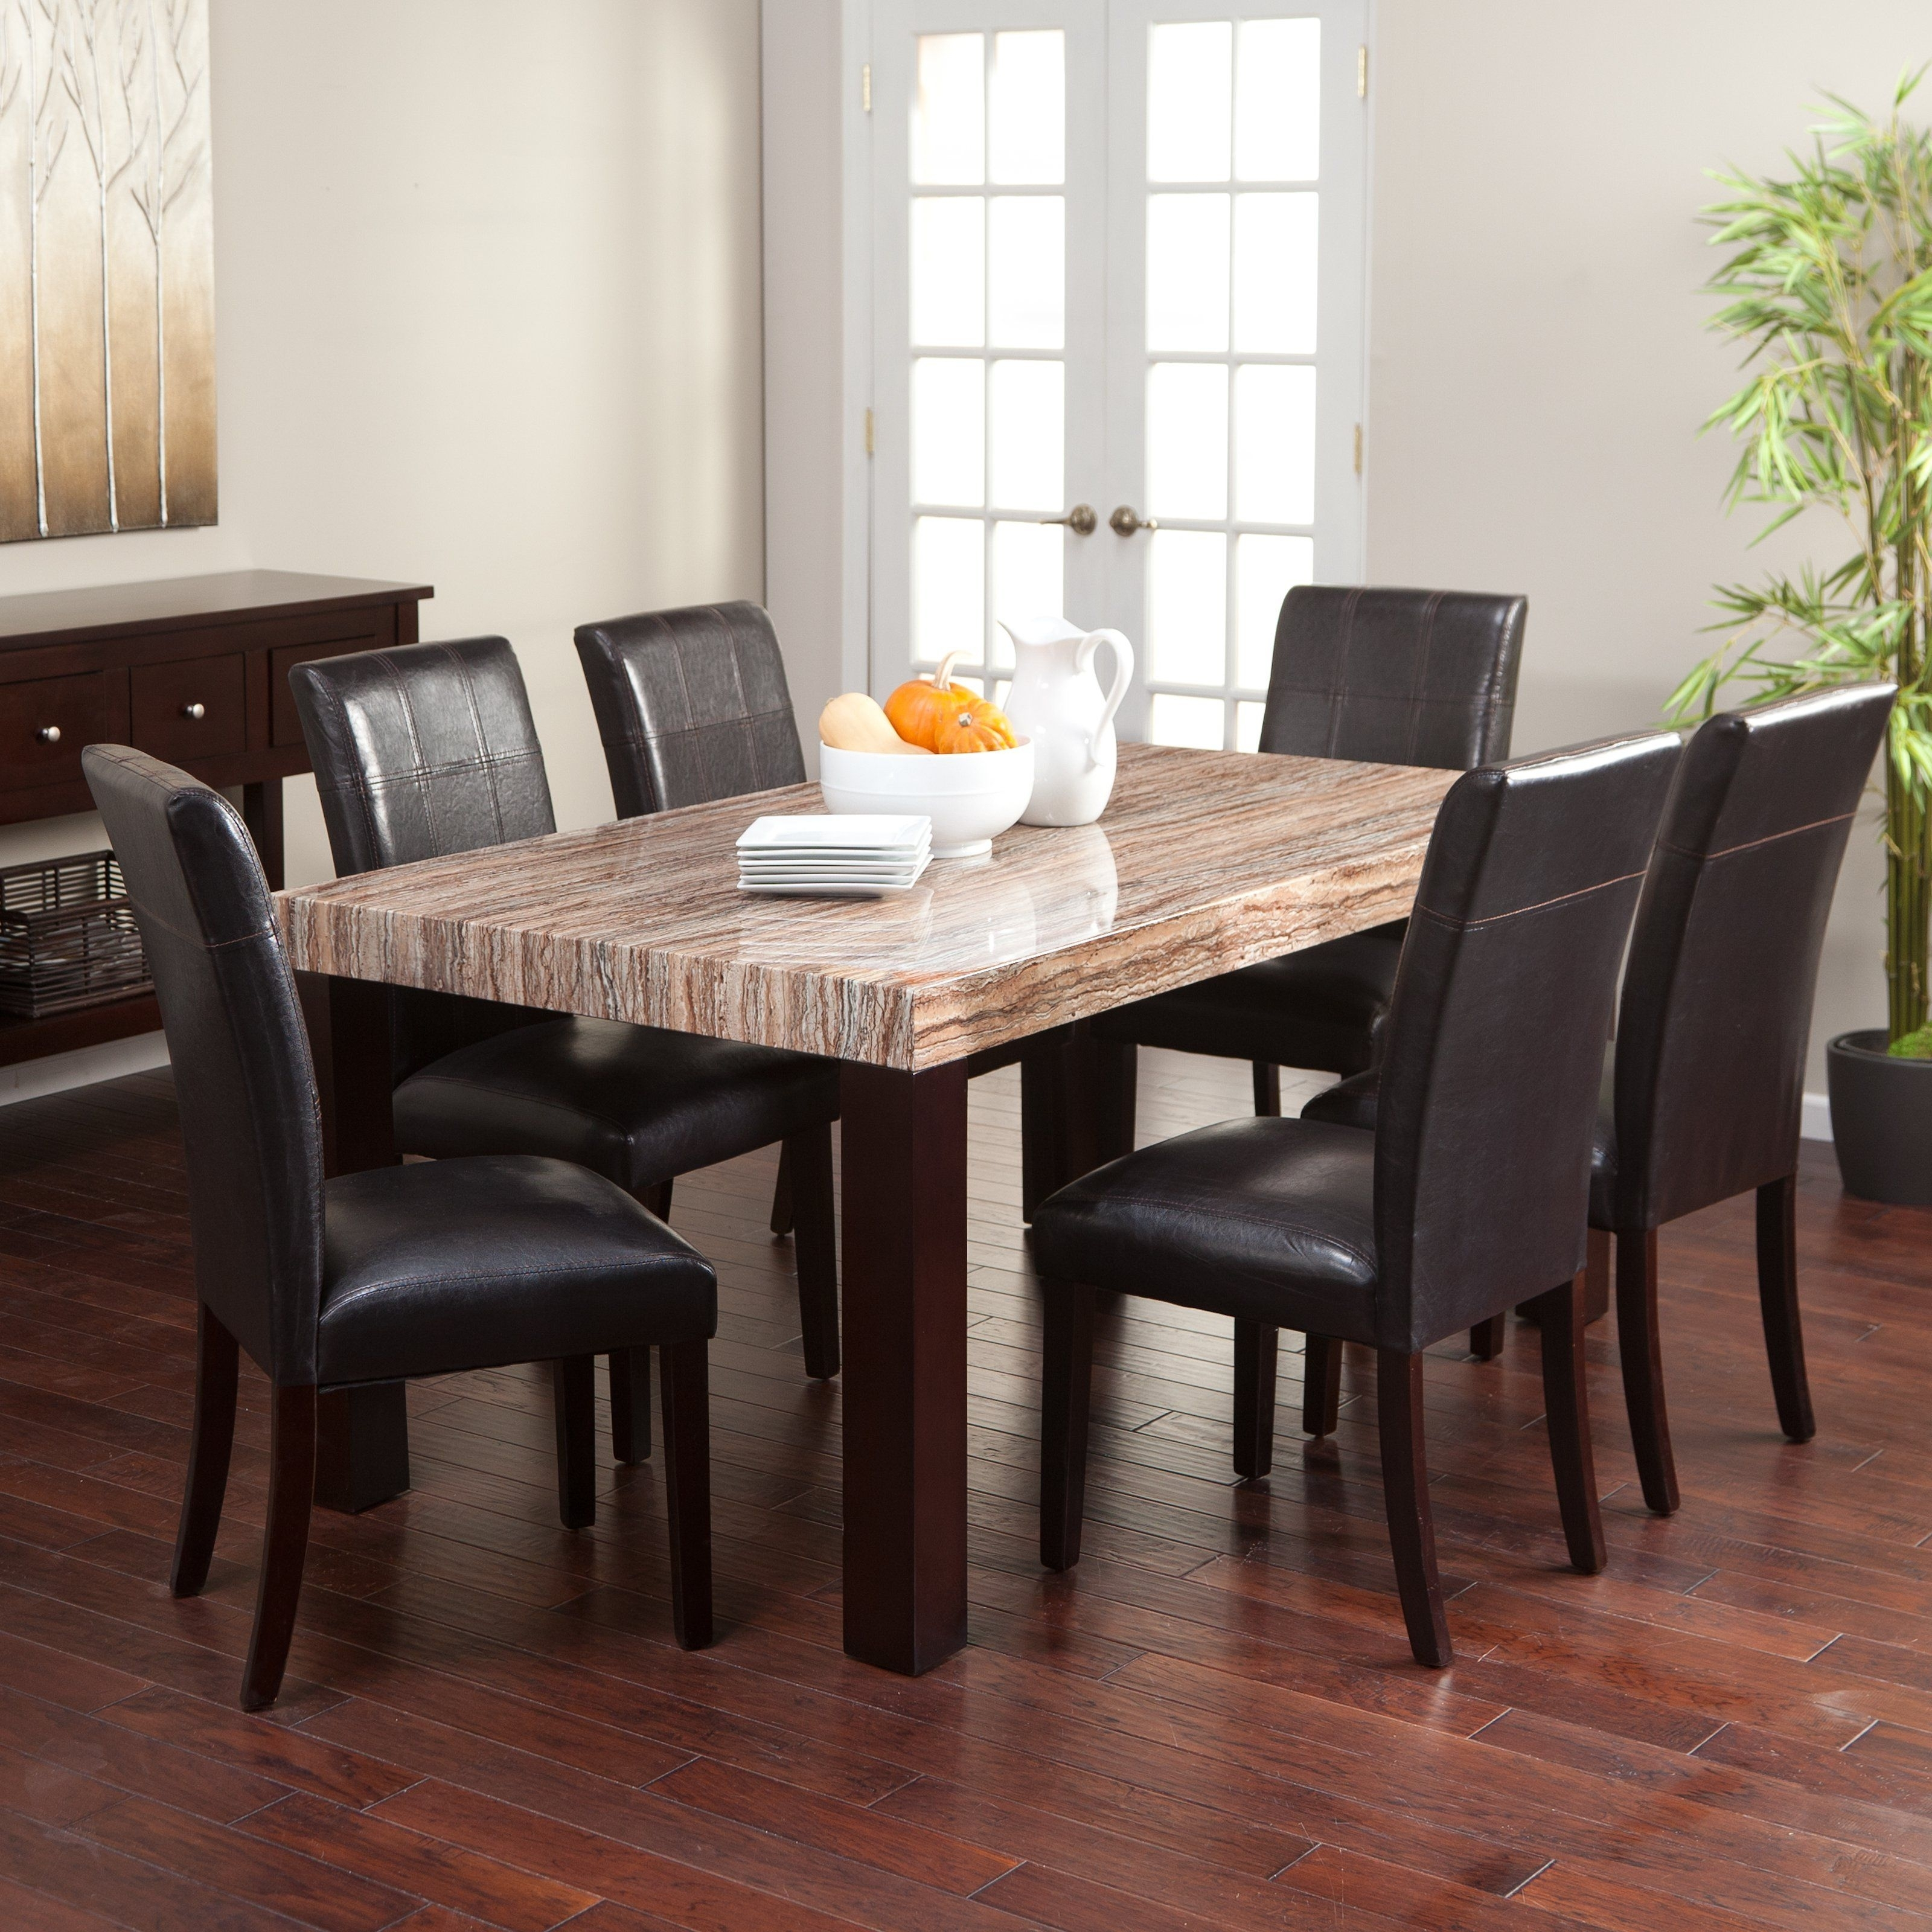 Carmine 7 Piece Dining Table Set – With Its Creamy Caramel Colored In Recent Palazzo 6 Piece Rectangle Dining Sets With Joss Side Chairs (Photo 12 of 20)